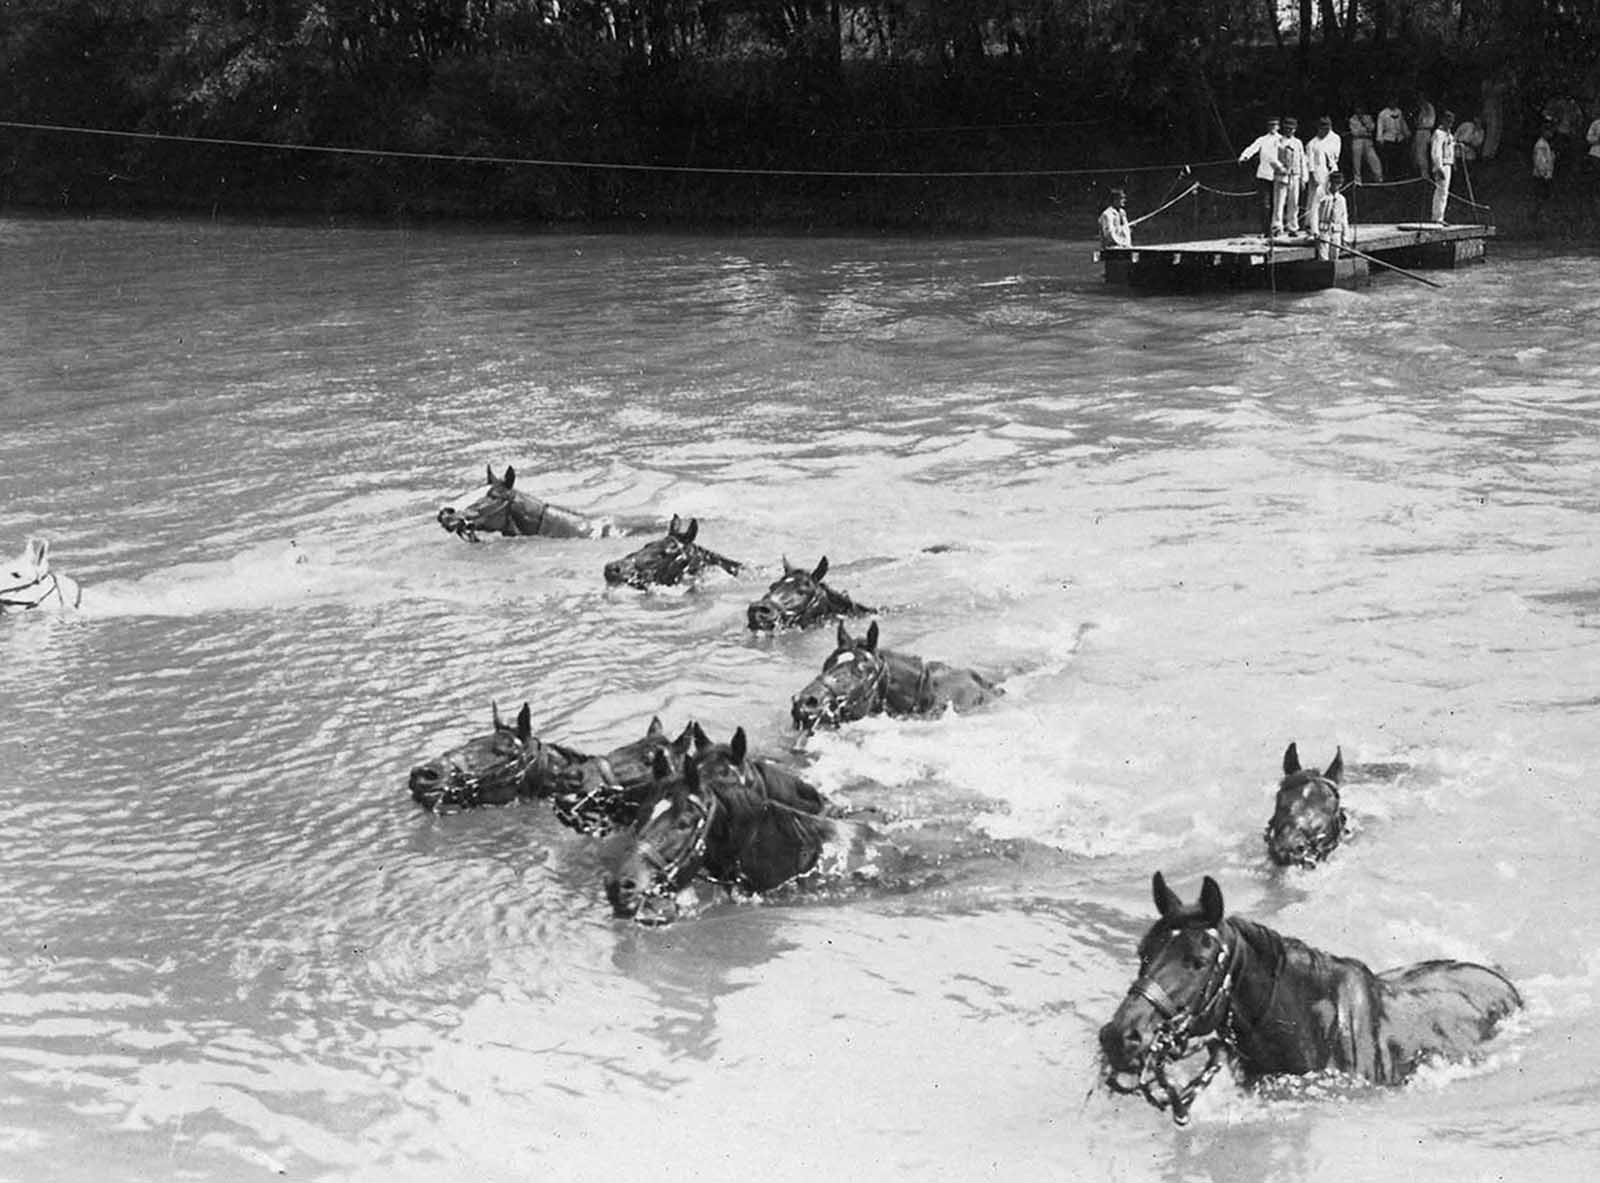 French cavalry horses swim across a river in northern France.